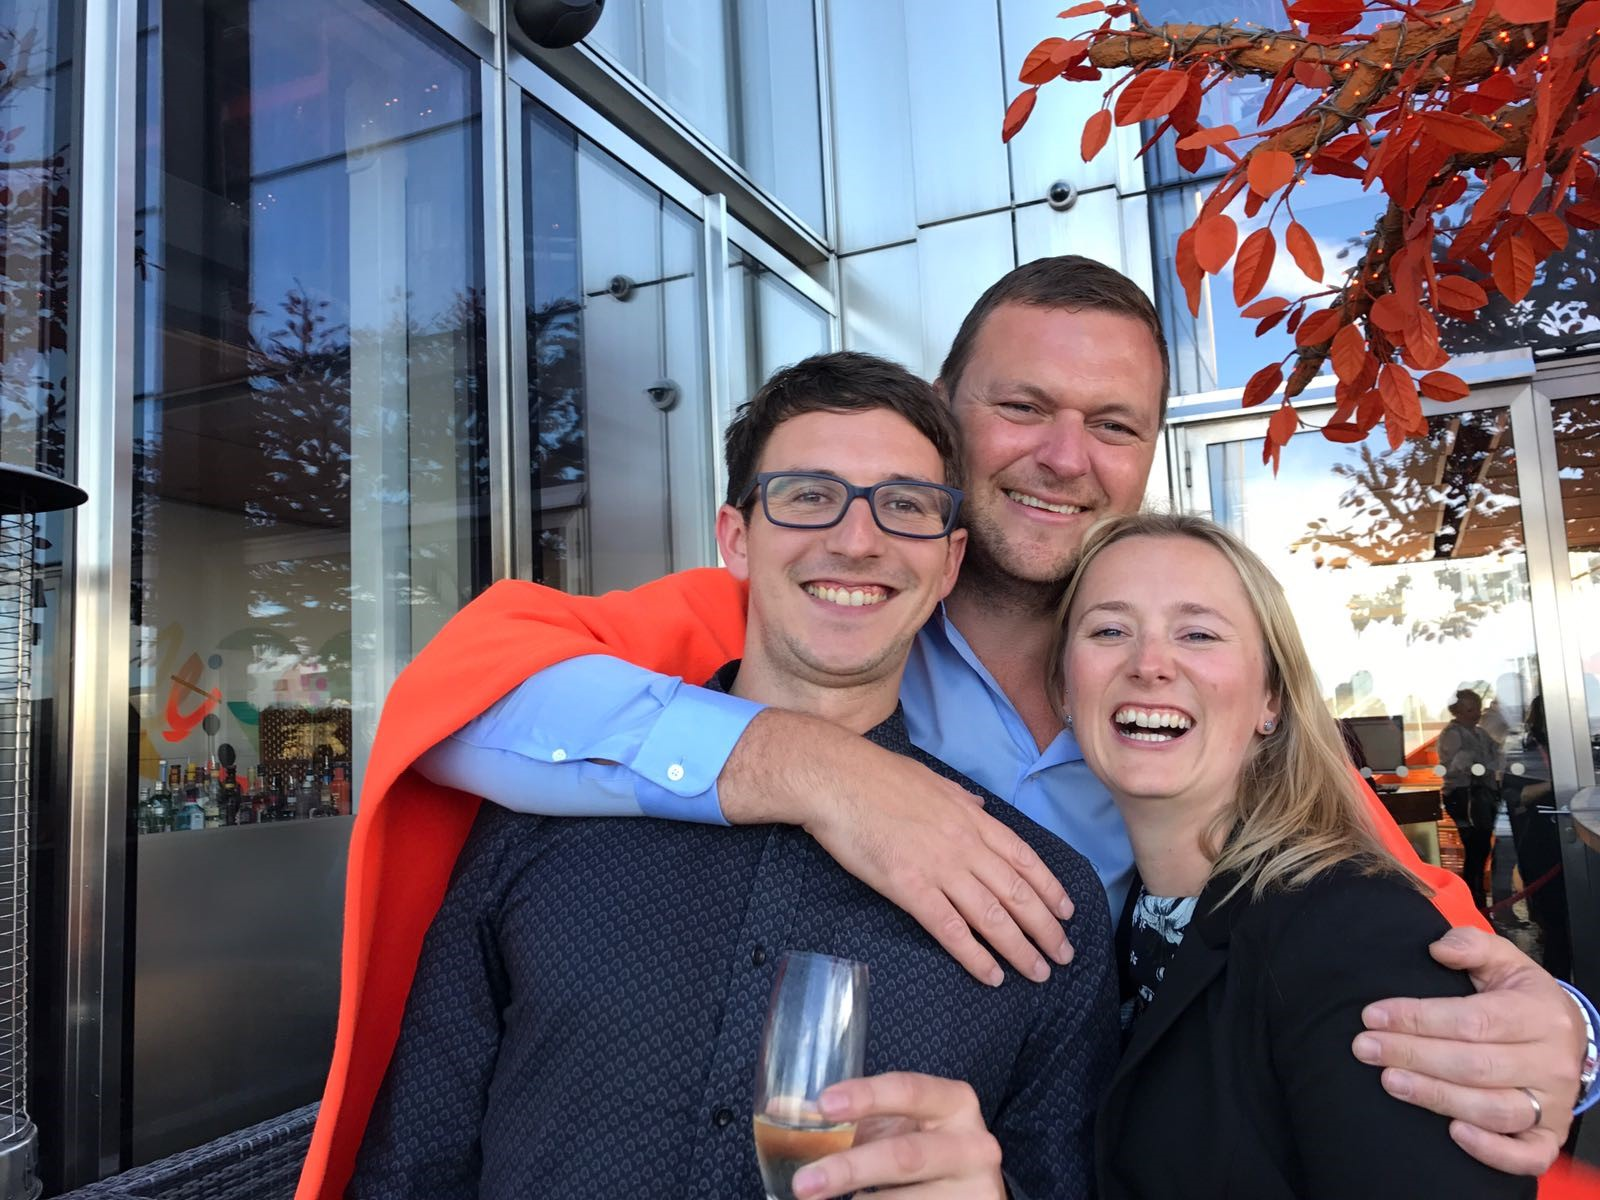 Two men and a women at Sushi Samba smiling with a glass of champagne in their hands